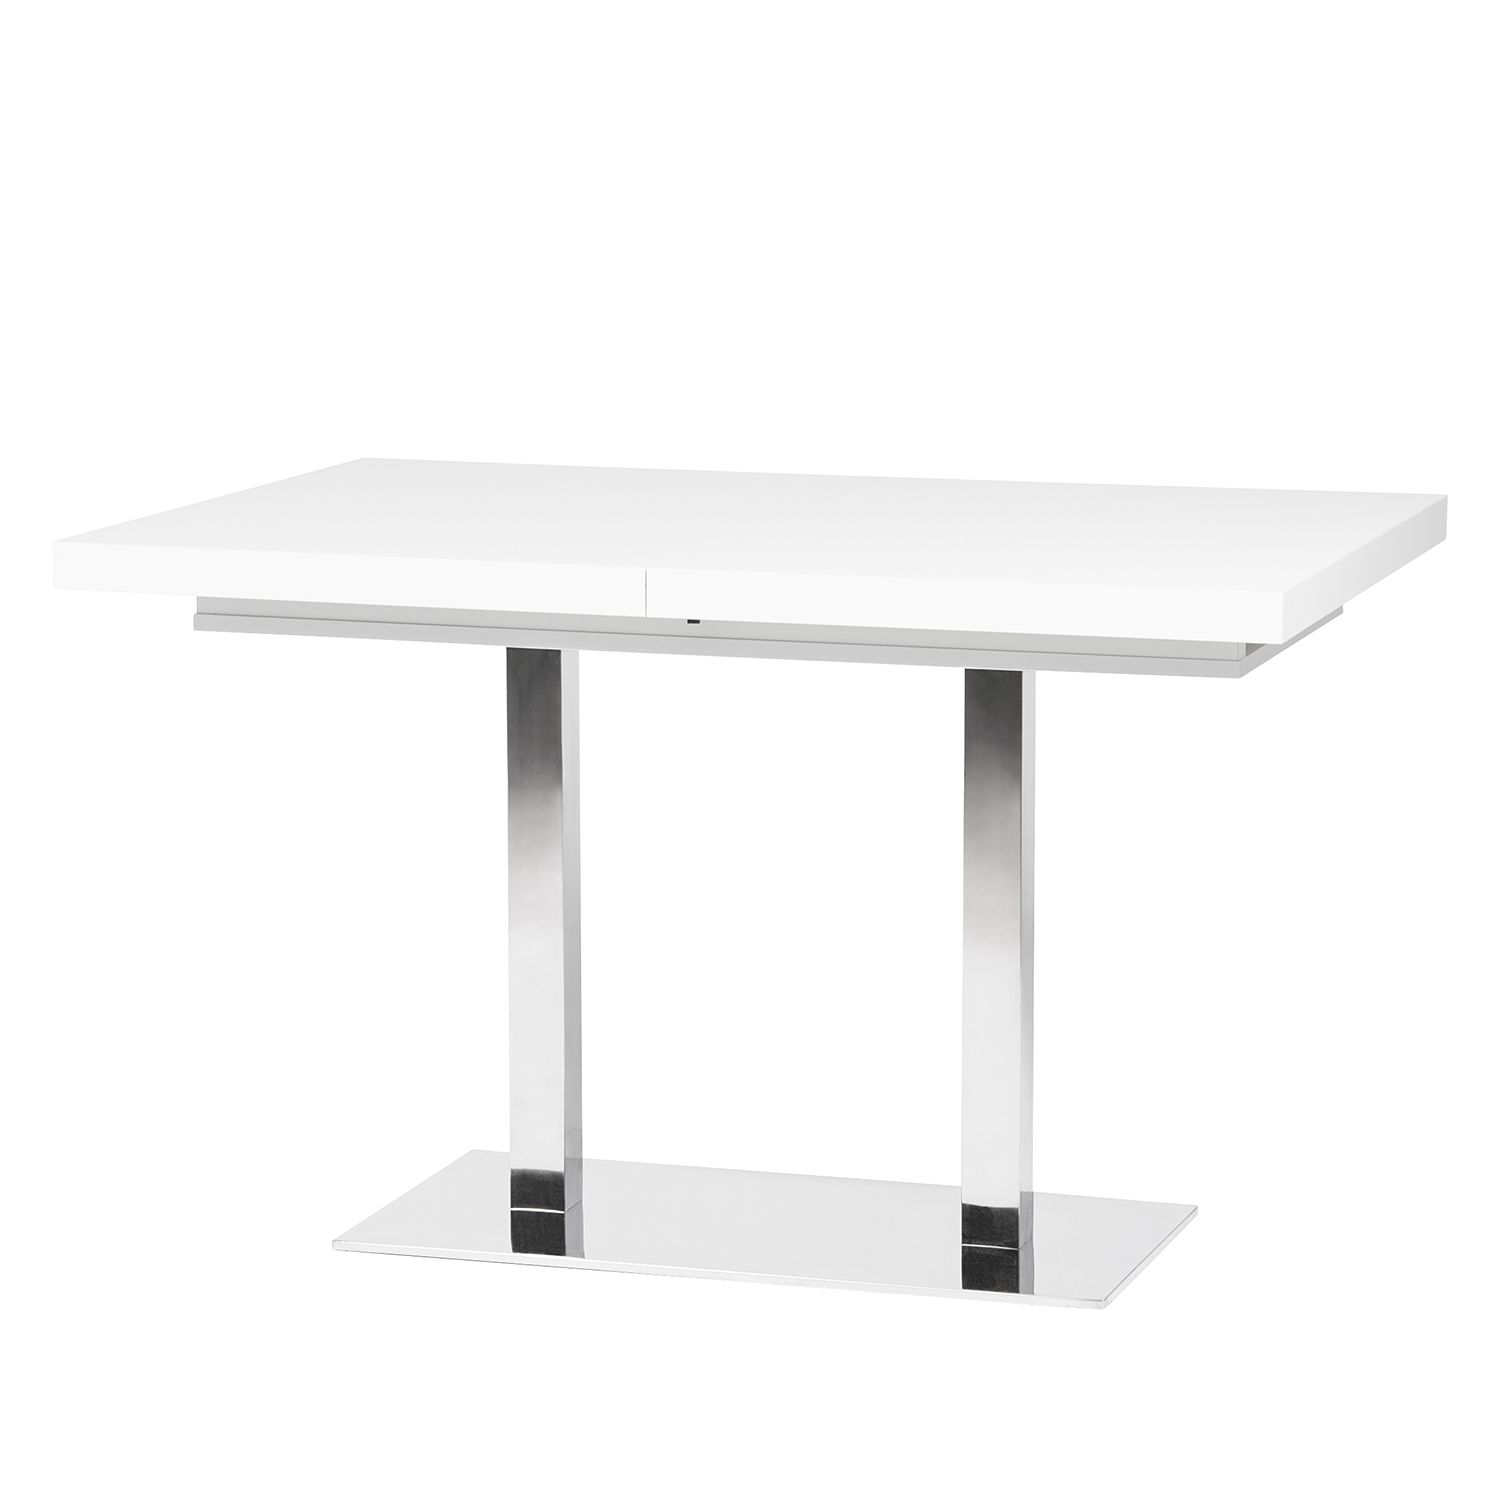 Table à manger Quadrati (extensible) - Blanc, mooved